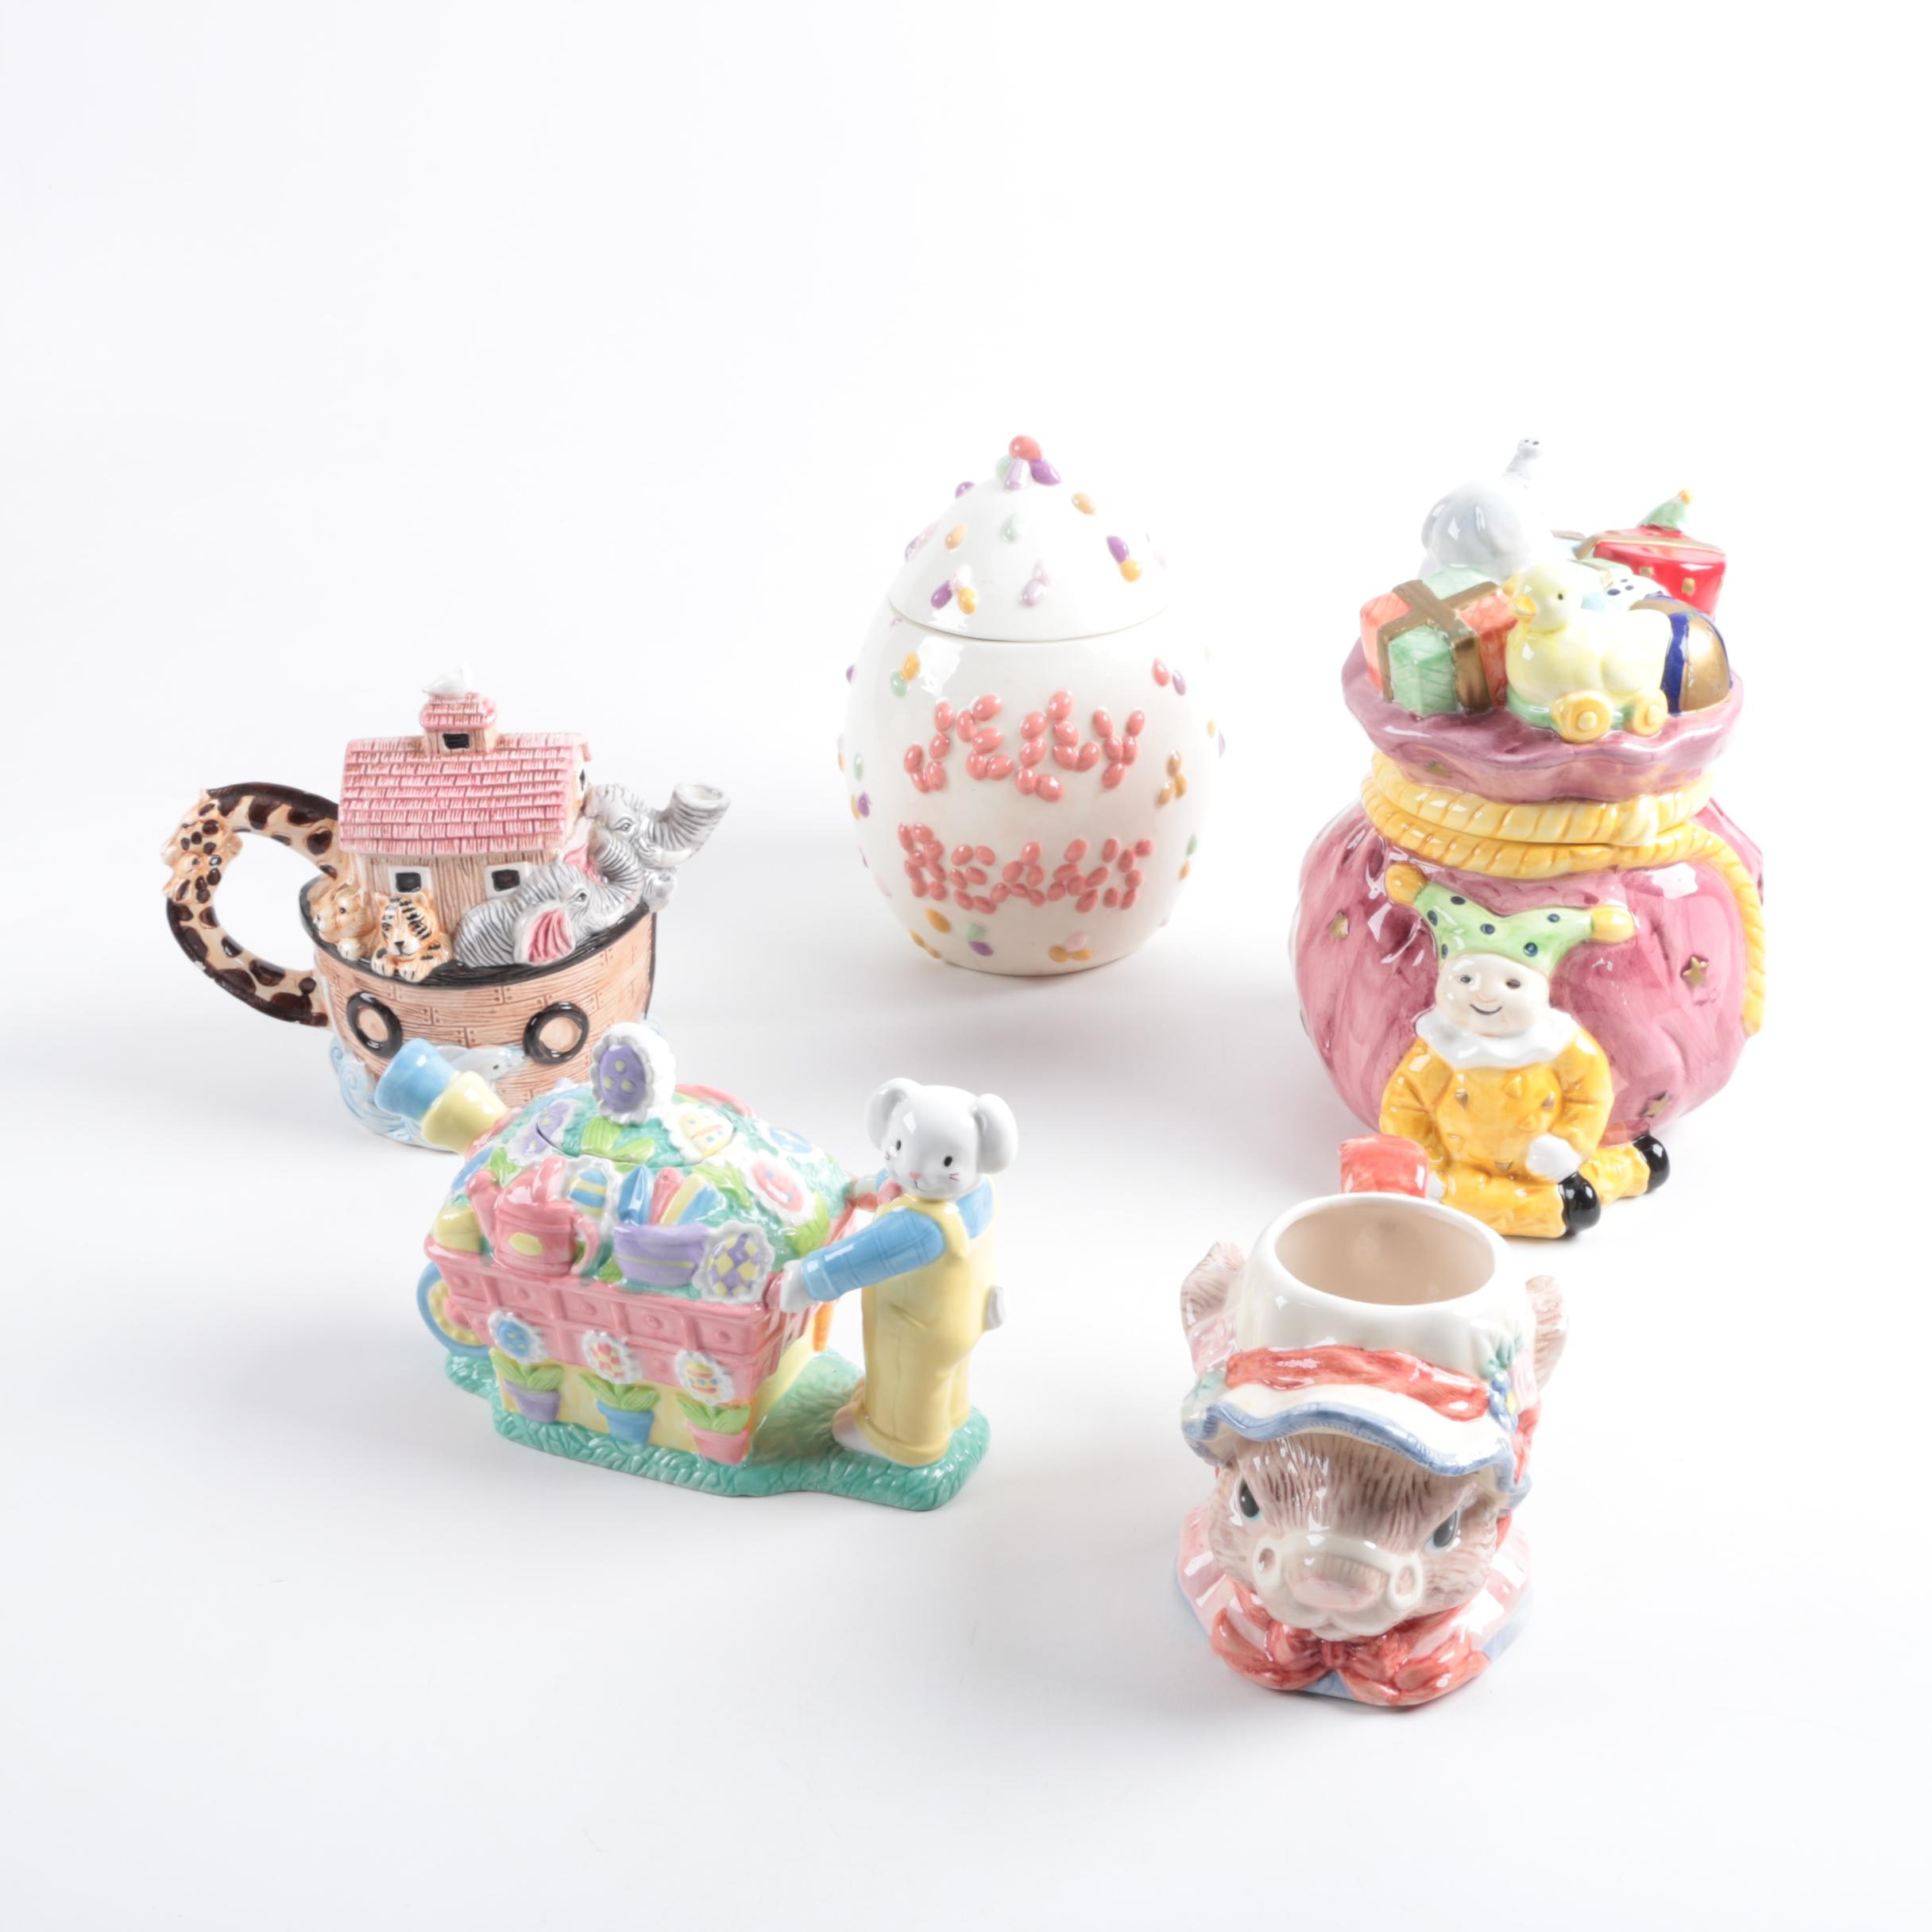 Assorted Themed Ceramic Cookie Jars and Mug